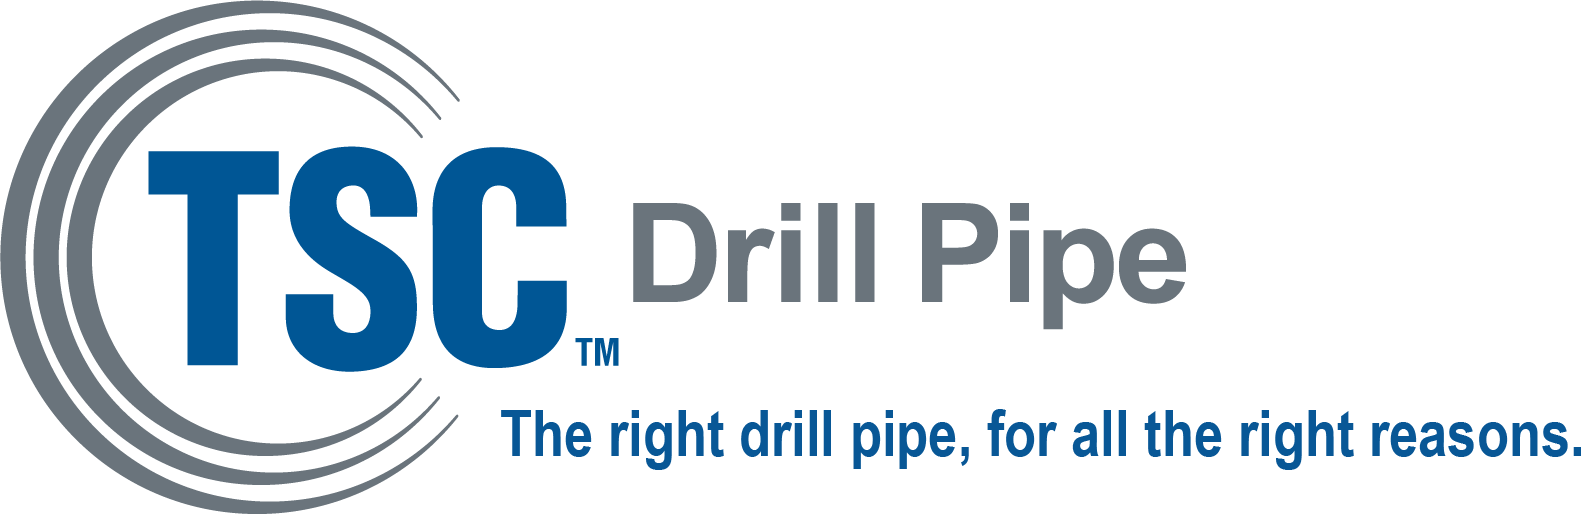 TSC Drill Pipe | A Division of Texas Steel Conversion| Drill